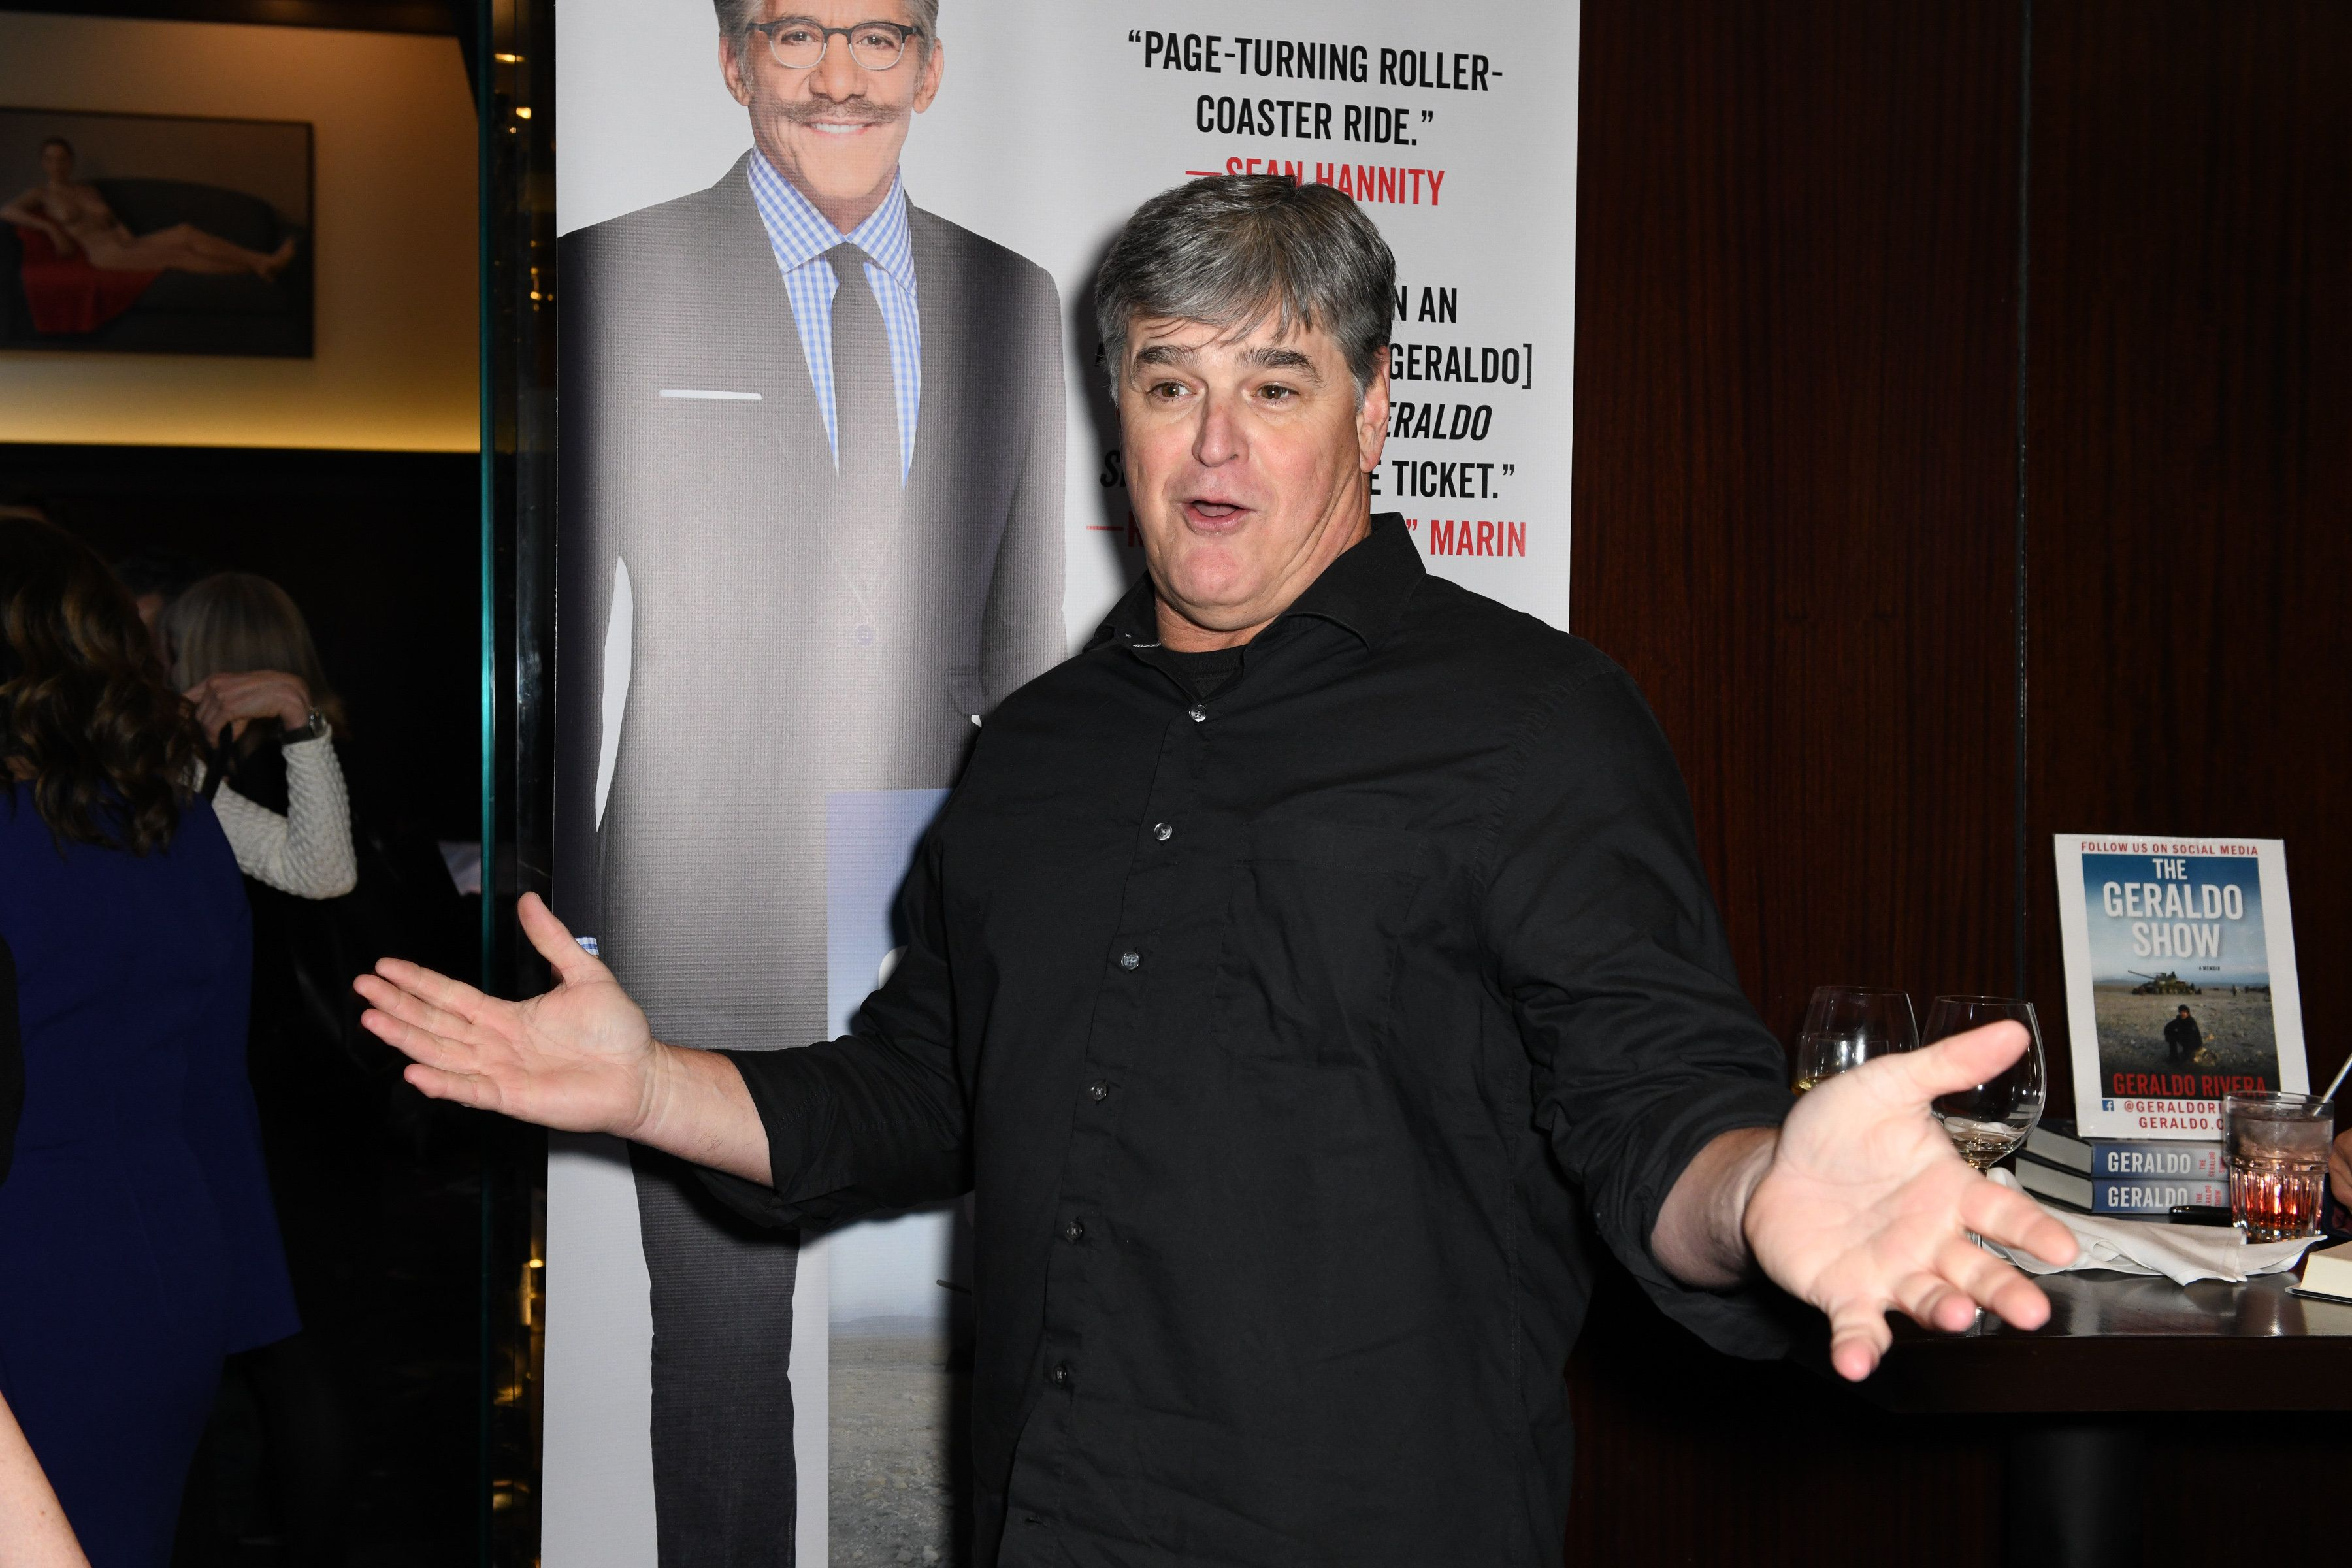 The Shawn hannity is an asshole all does